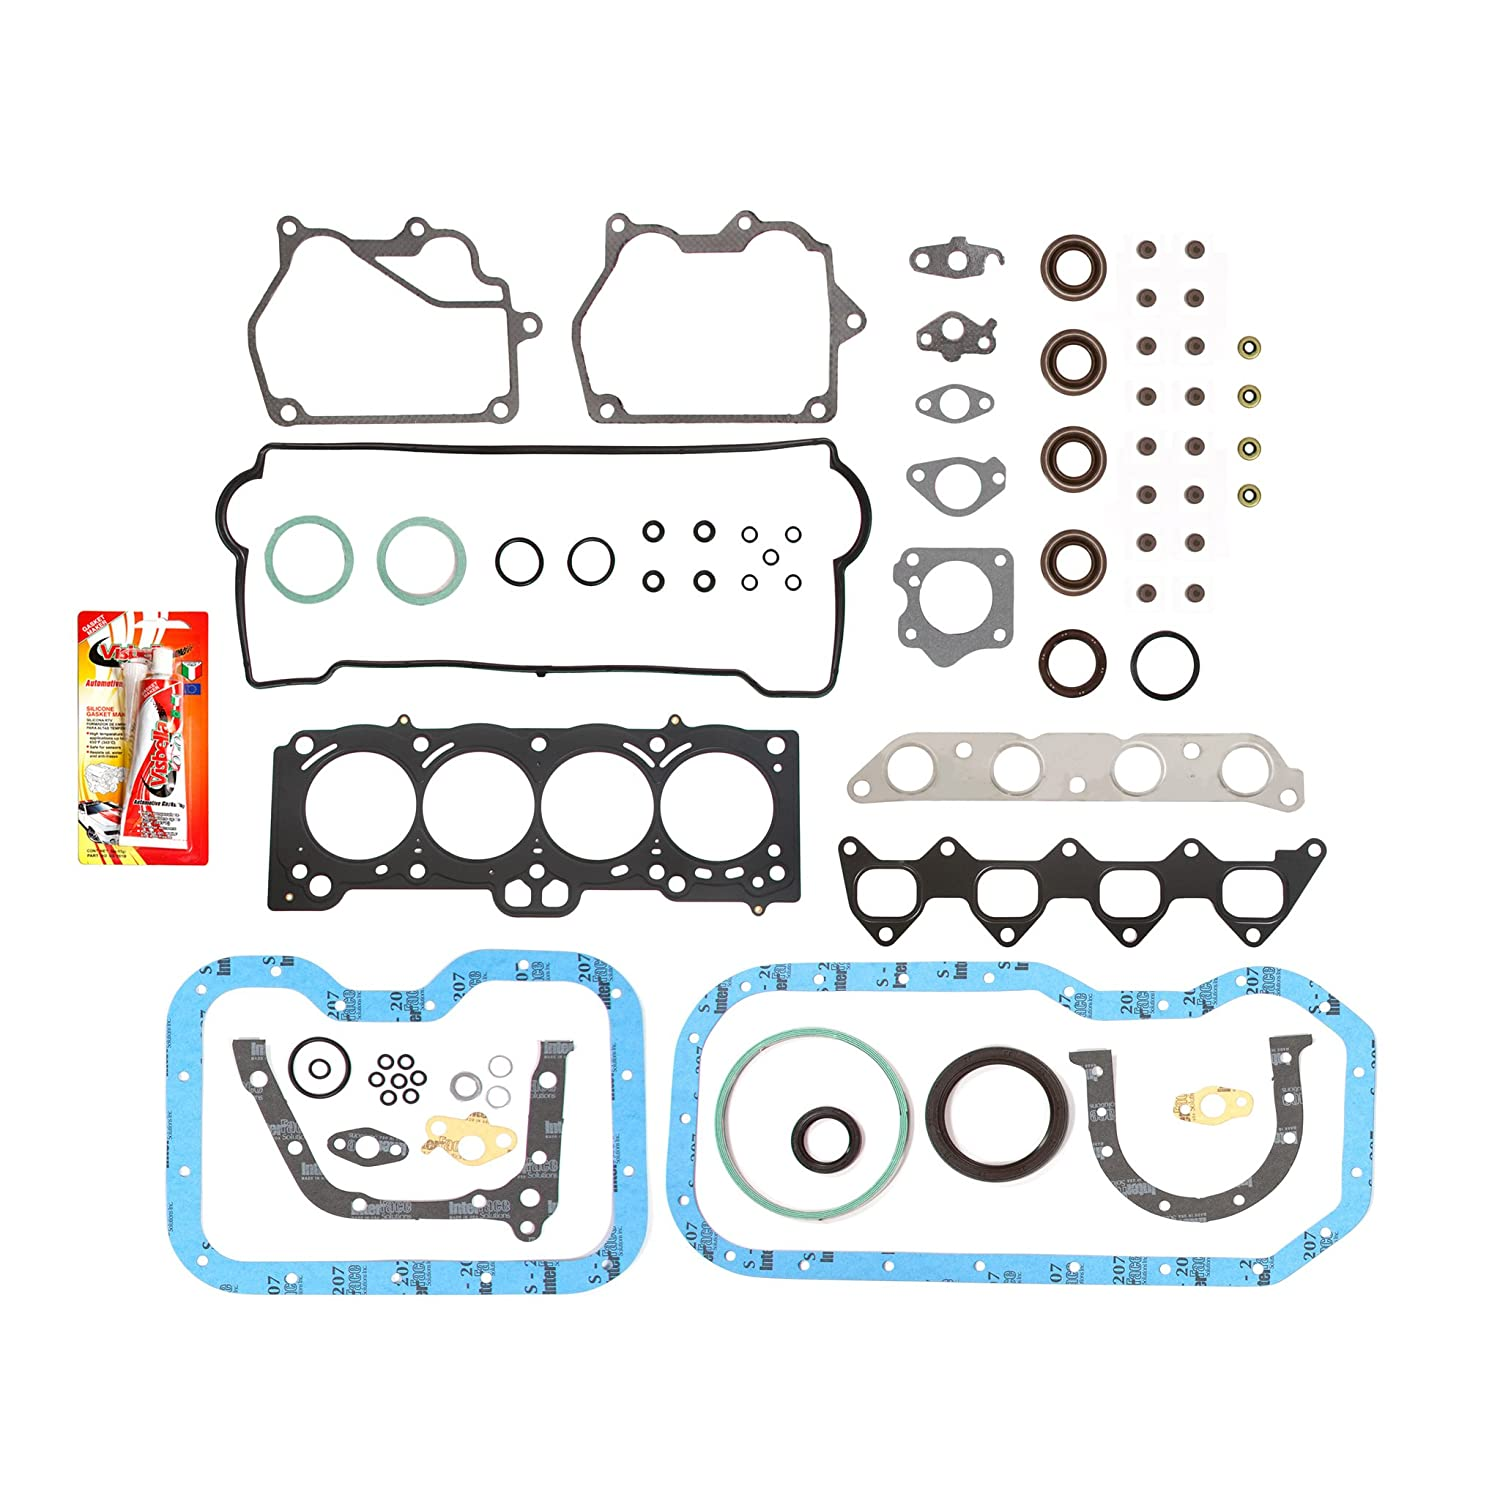 Domestic Gaskets Engine Rering Kit FSBRR2015EVE\2\0\0 Fits 93-97 Toyota Celica Corolla Geo 1.8 DOHC 7AFE Full Gasket Set 0.50mm 0.020 Oversize Piston Rings Standard Size Main Rod Bearings